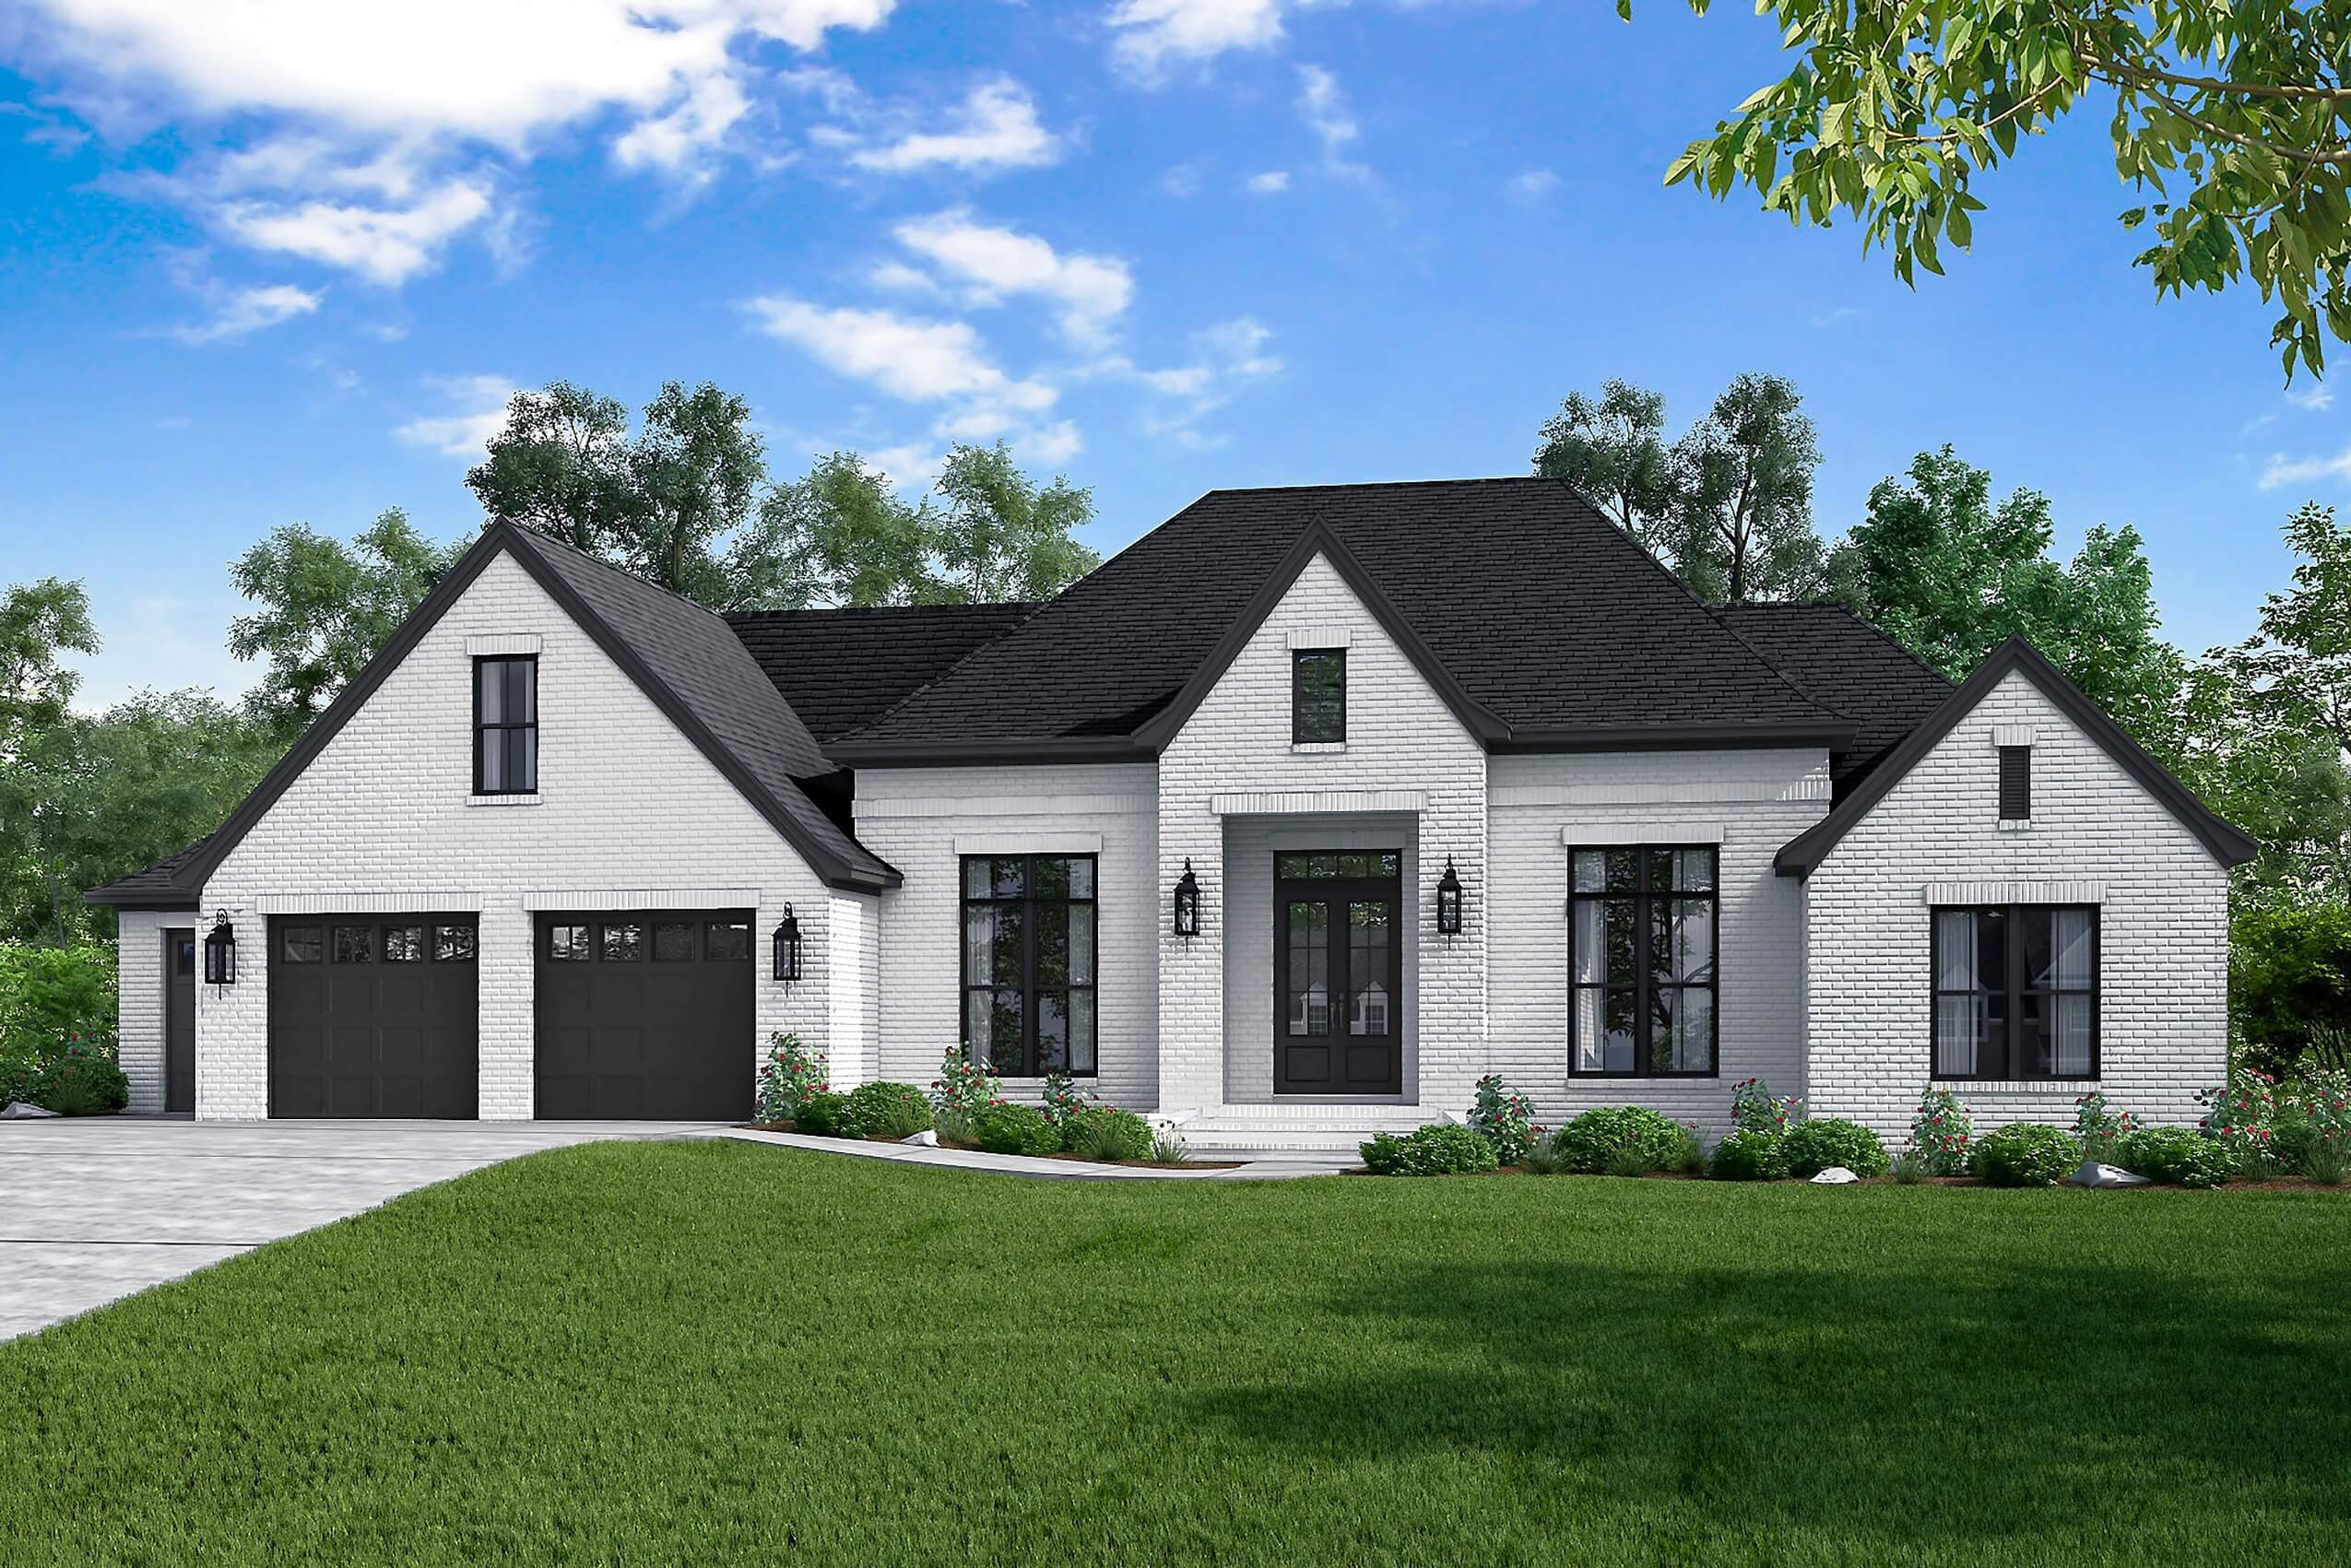 Tiny Home Designs: Cypress Pointe II House Plan